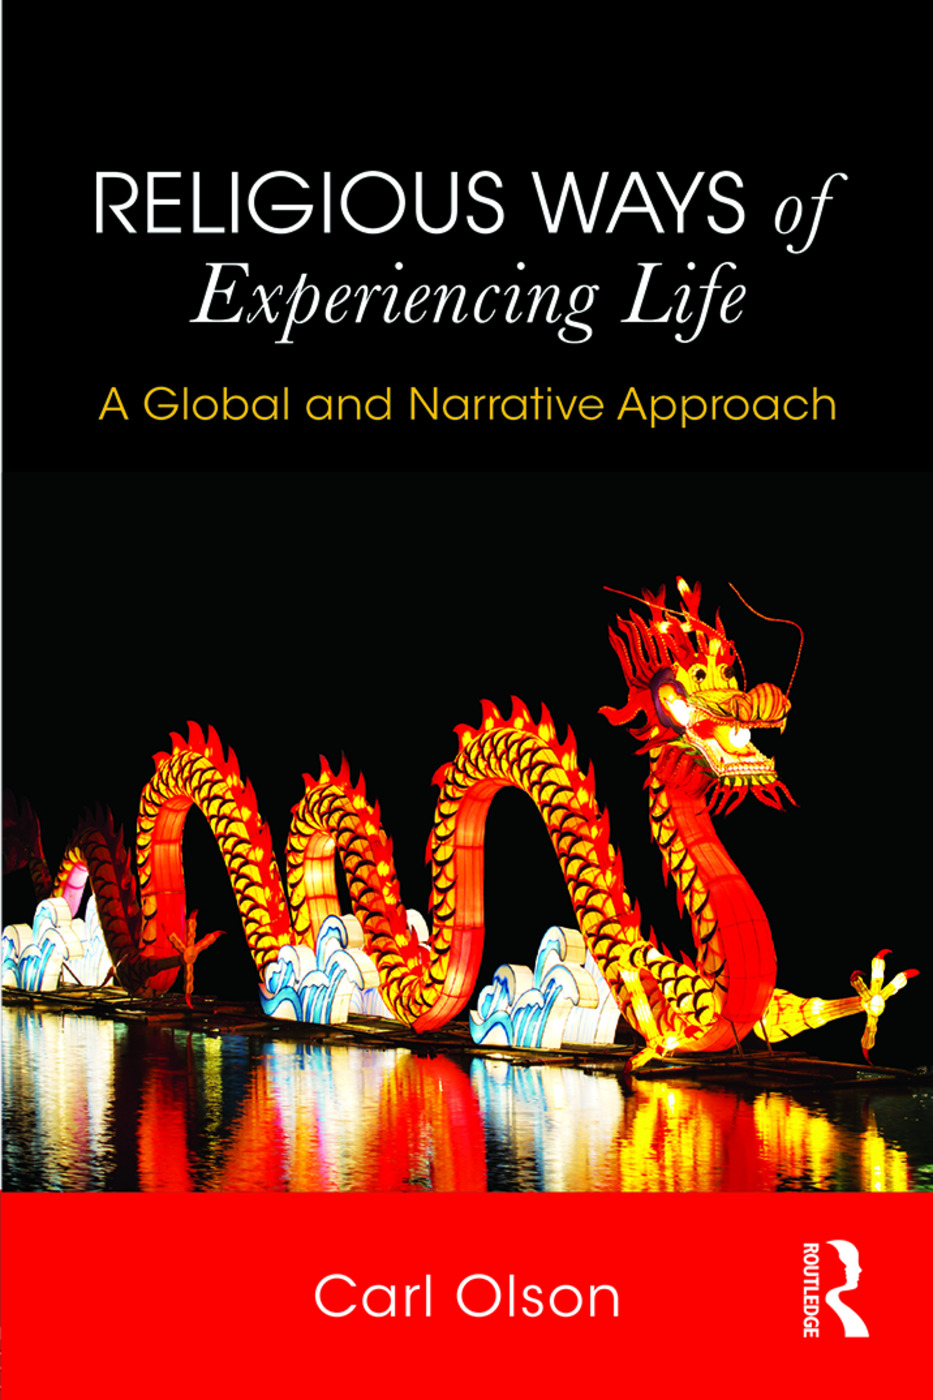 Religious Ways of Experiencing Life: A Global and Narrative Approach book cover